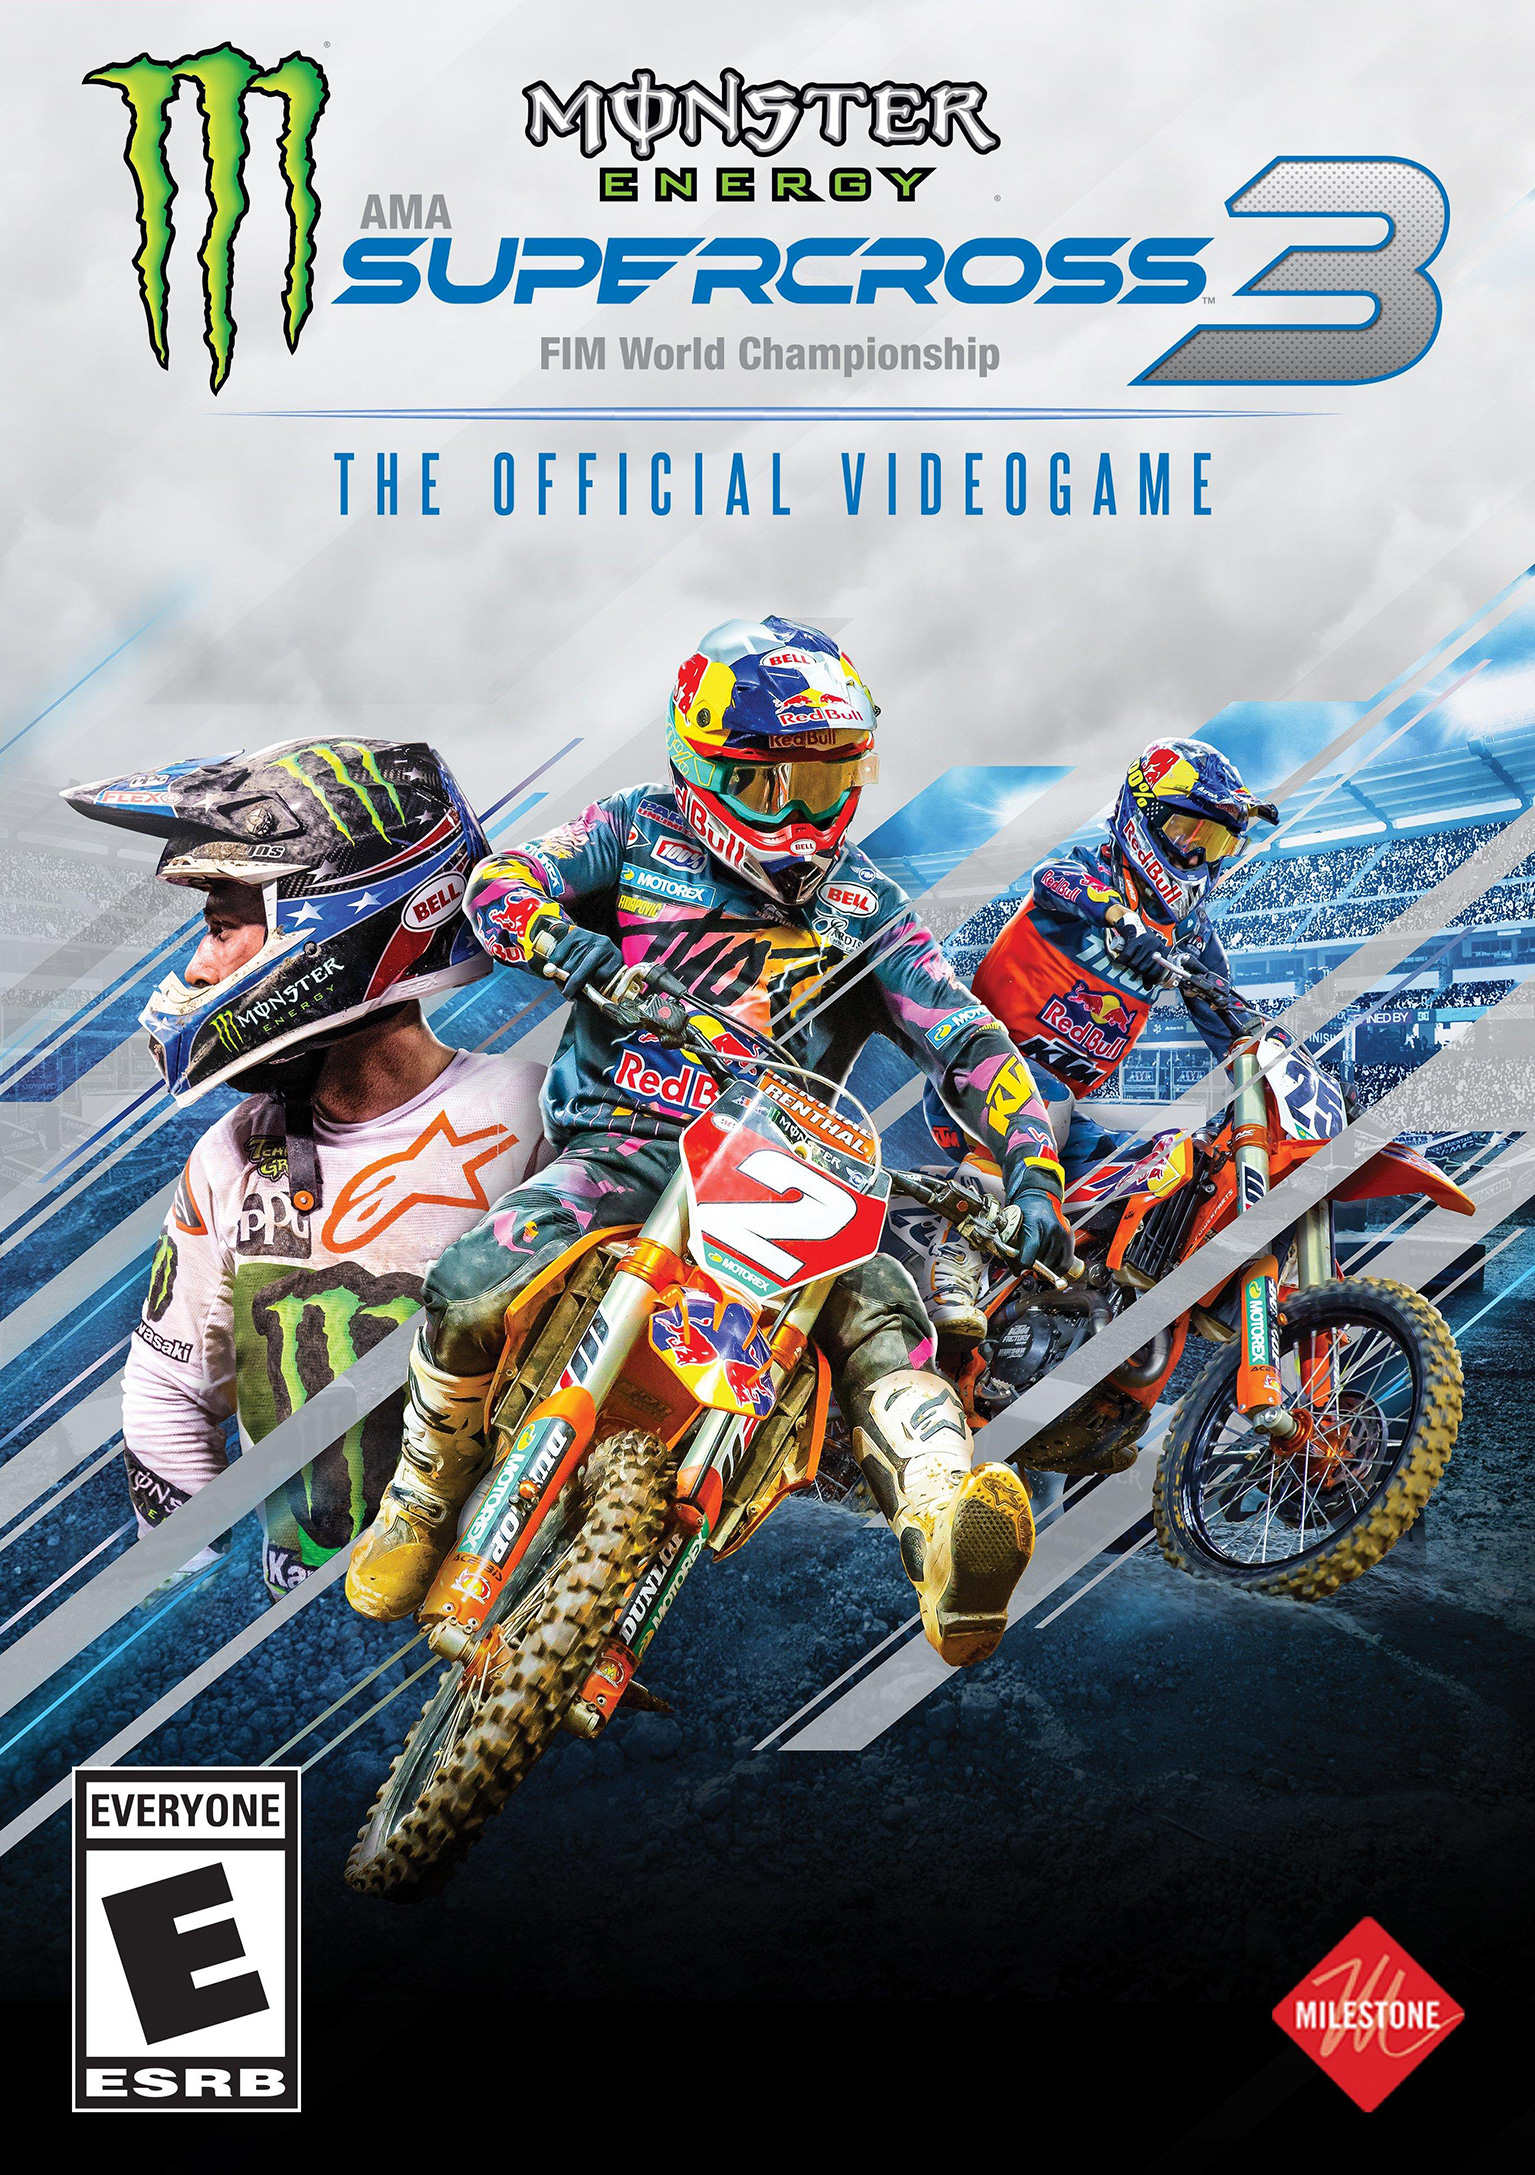 Monster Energy Supercross 3 - The Official Videogame - přední DVD obal